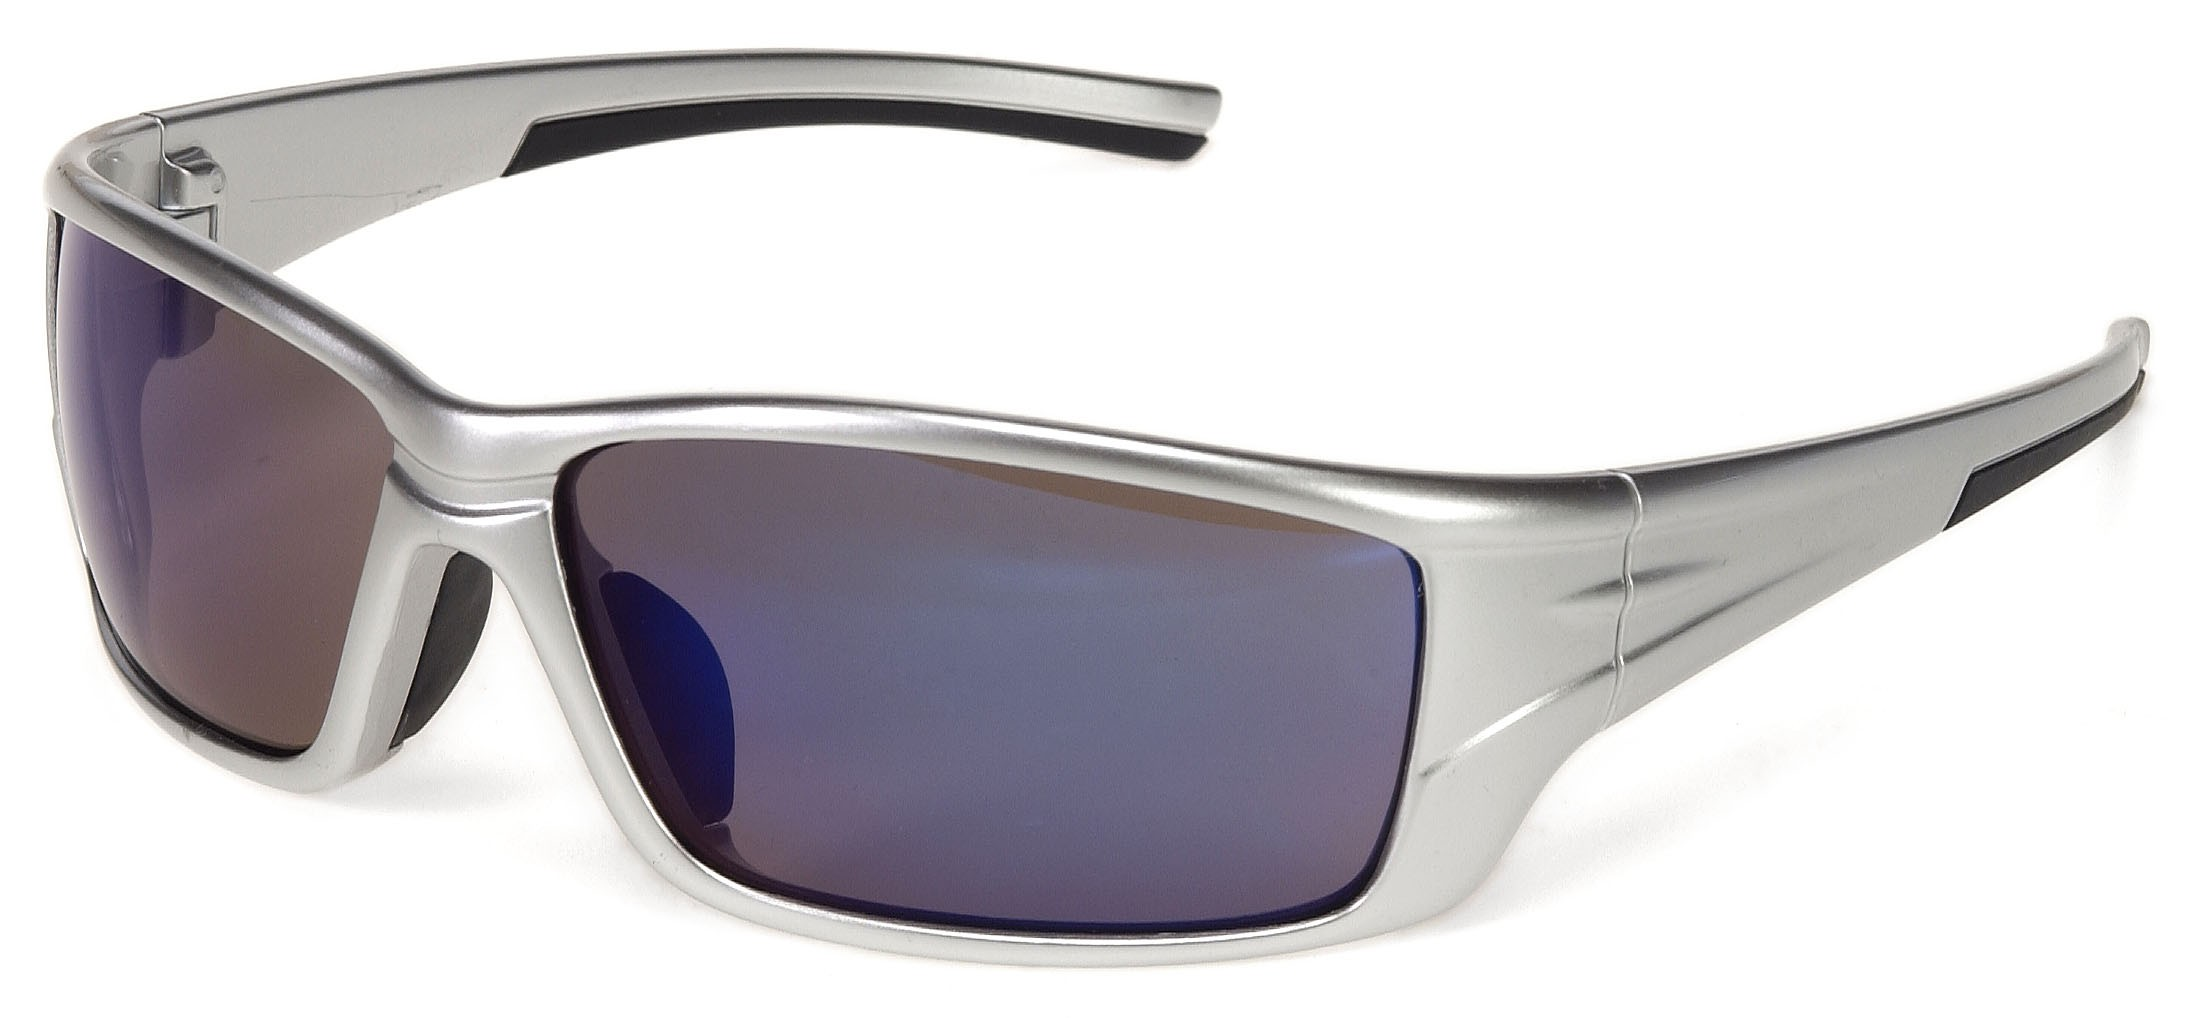 iNOX® Eclipse™ - Blue Mirror lens with Silver frame